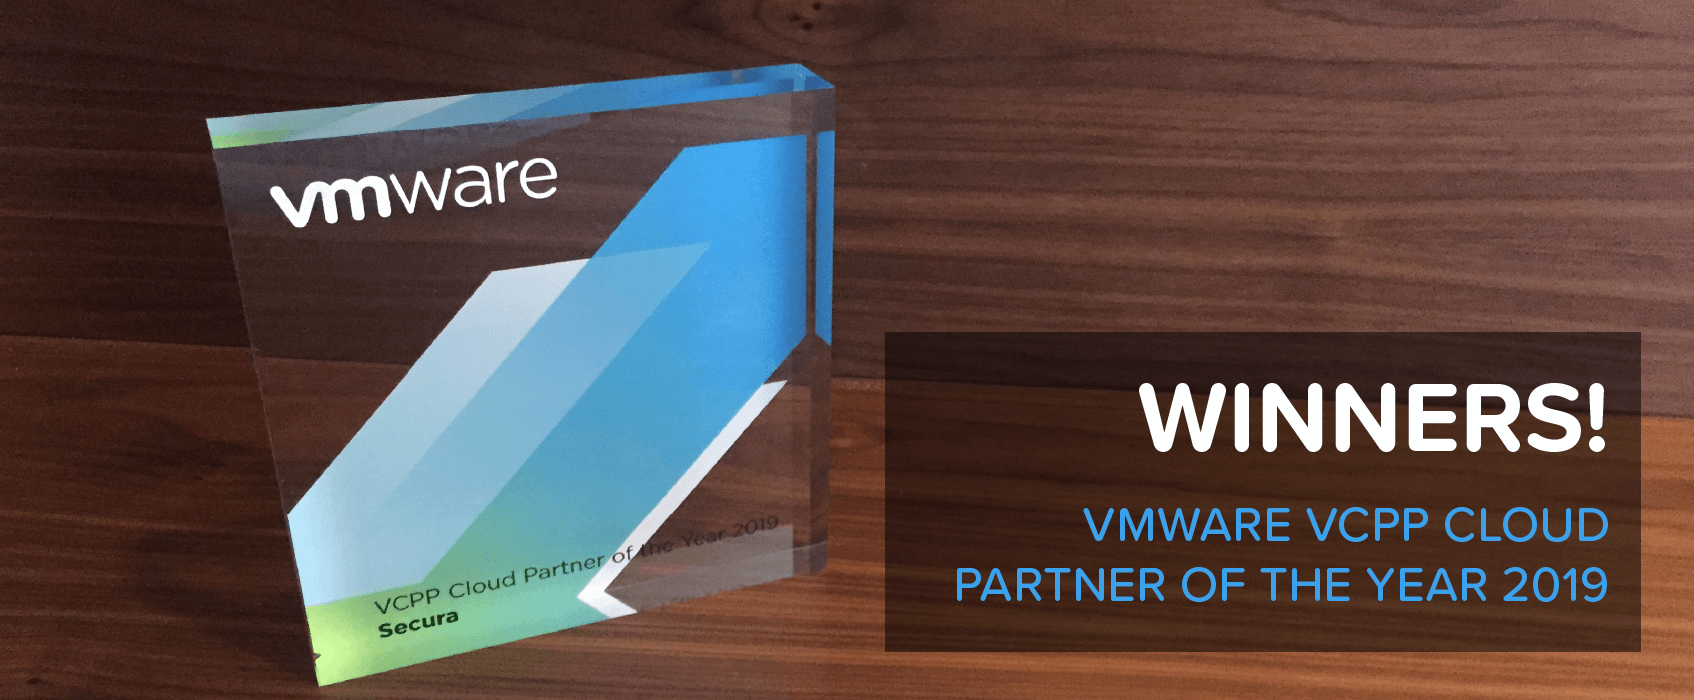 Secura Win the VMware VCPP Cloud Provider of the Year Award 2019